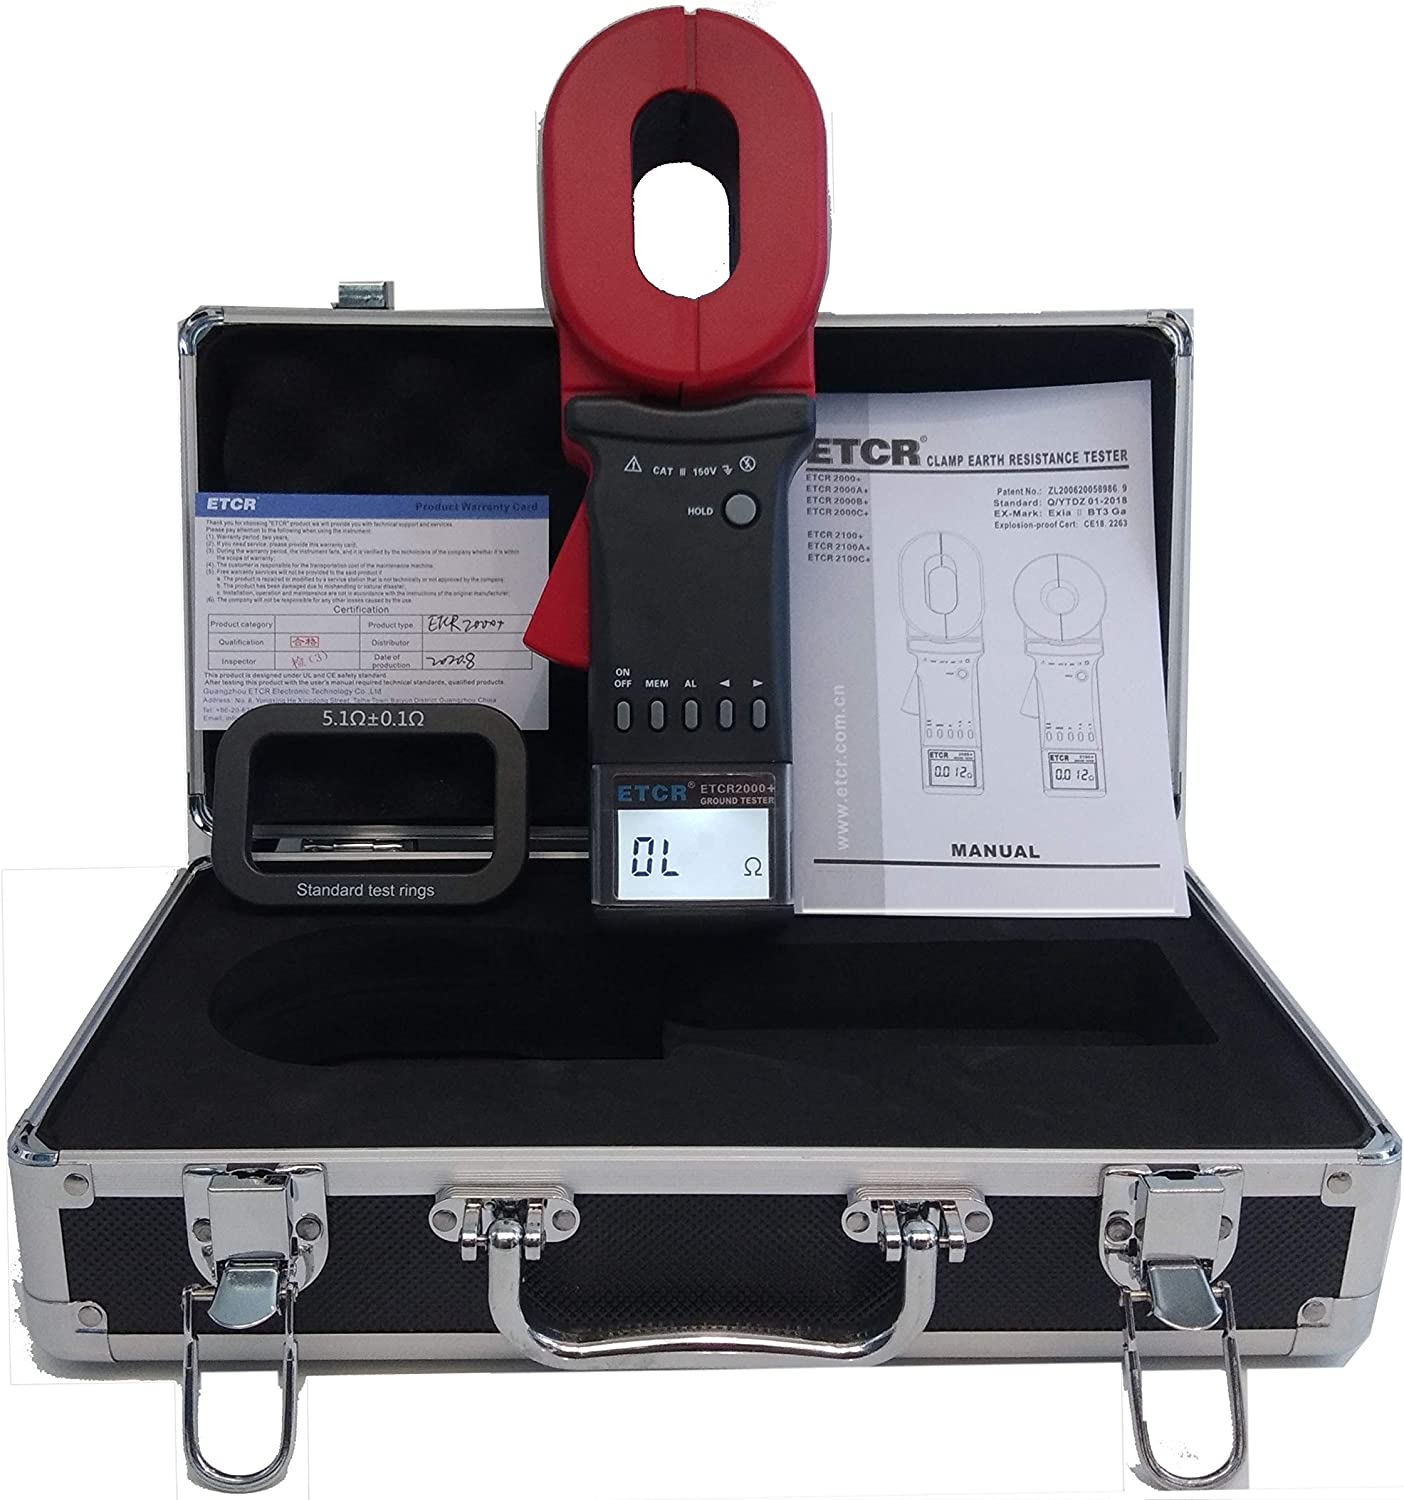 Sales of SALE items from new works Max 88% OFF Digital Clamp on Earth Ground Resis Resistance tester Meter with